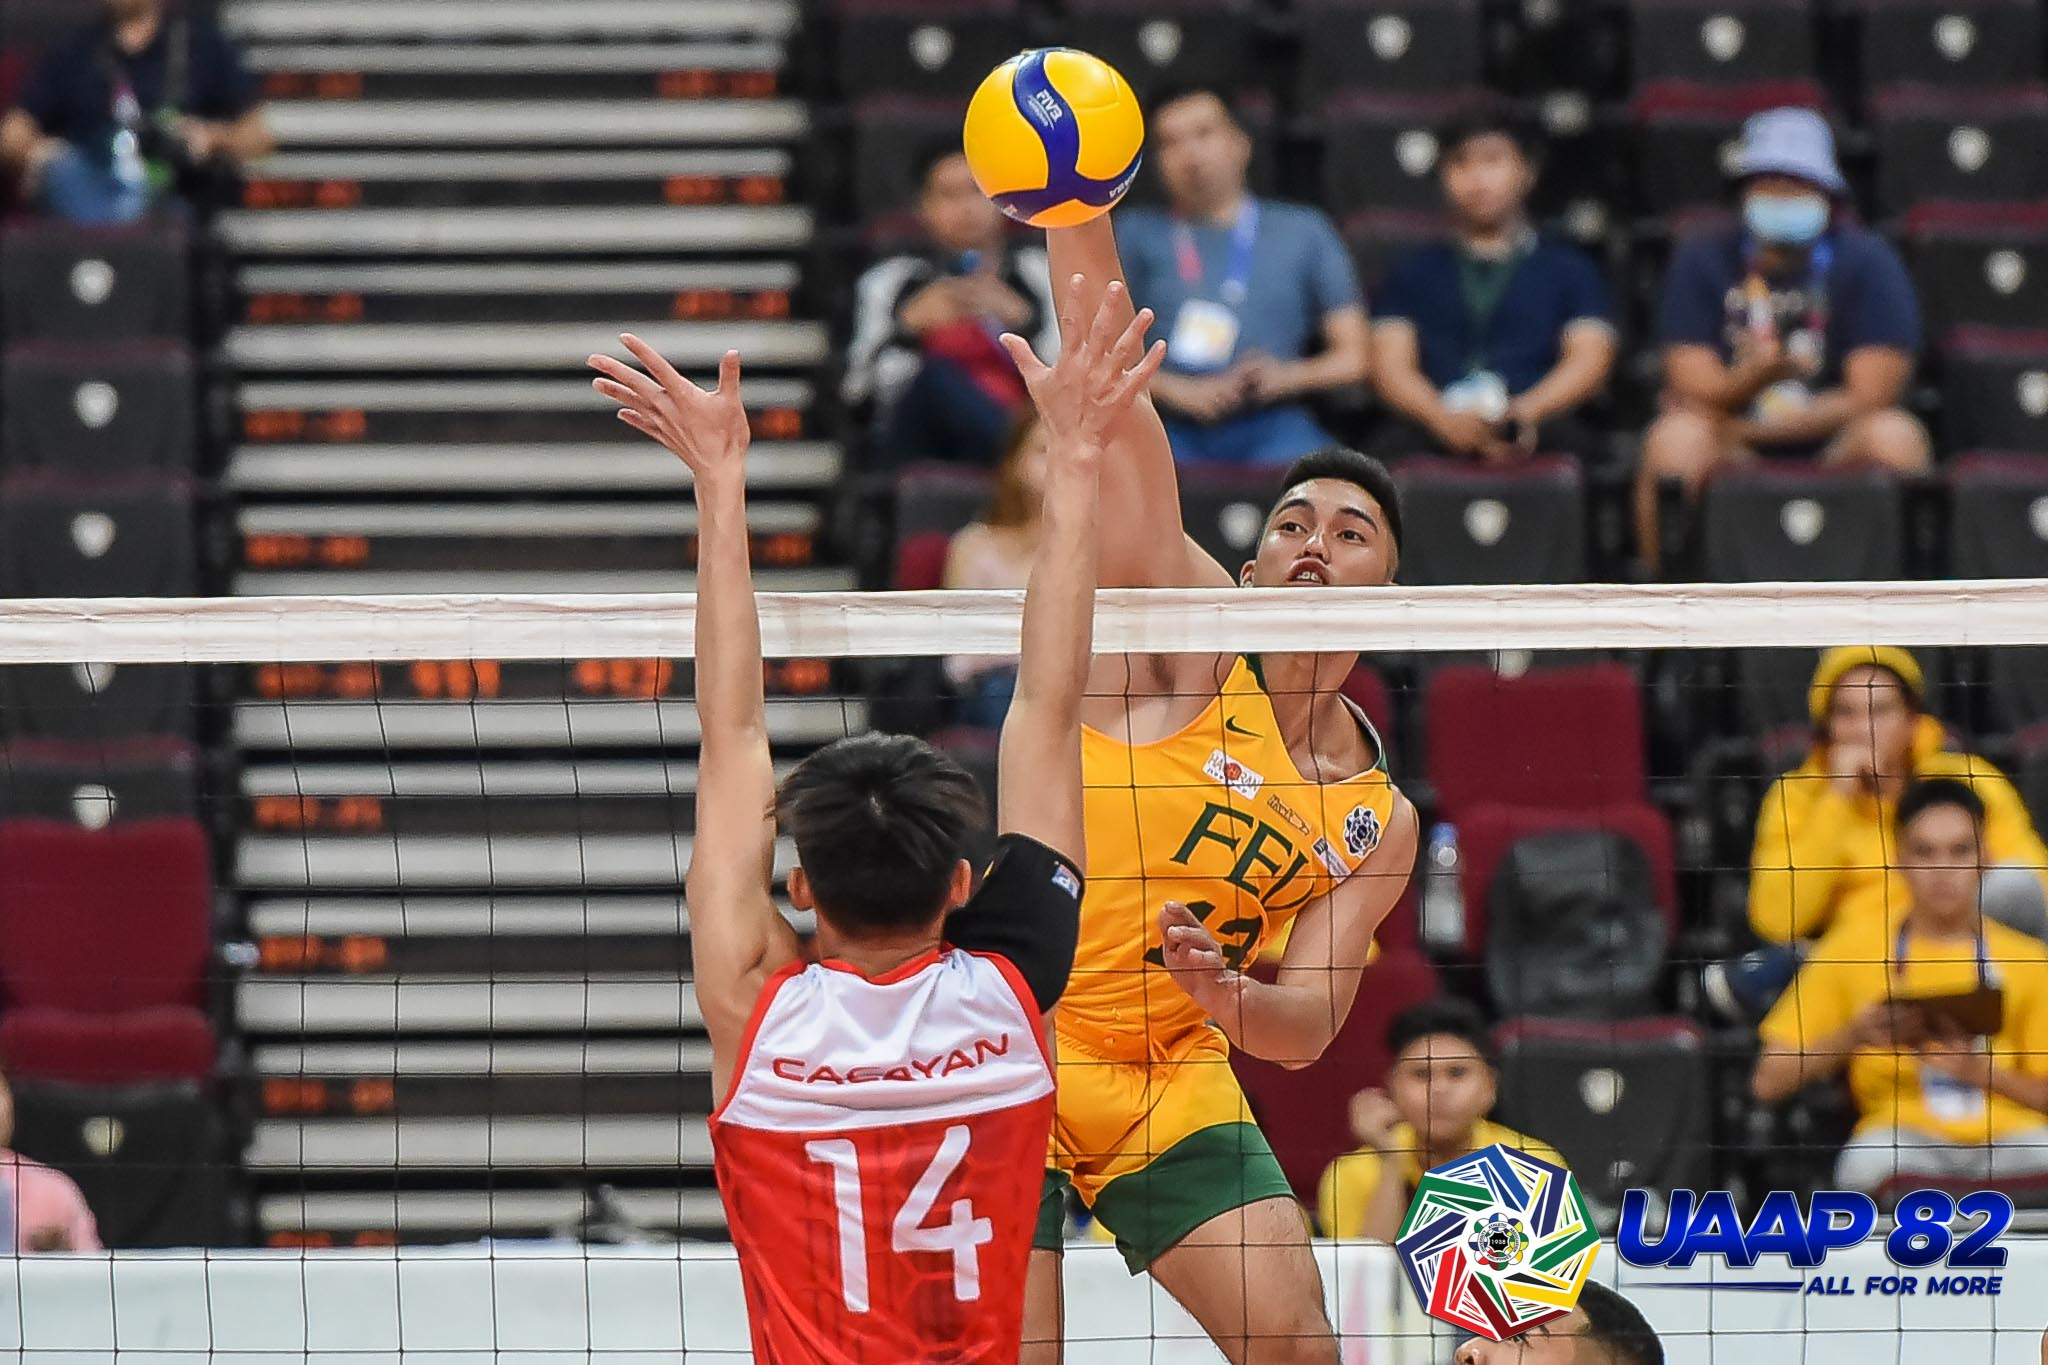 Tiebreaker Times Former UAAP Boys' MVP JJ Javelona introduces self in collegiate scene FEU News UAAP Volleyball  uaap season 82 men's volleyball UAAP Season 82 JJ Javelona FEU Men's Volleyball